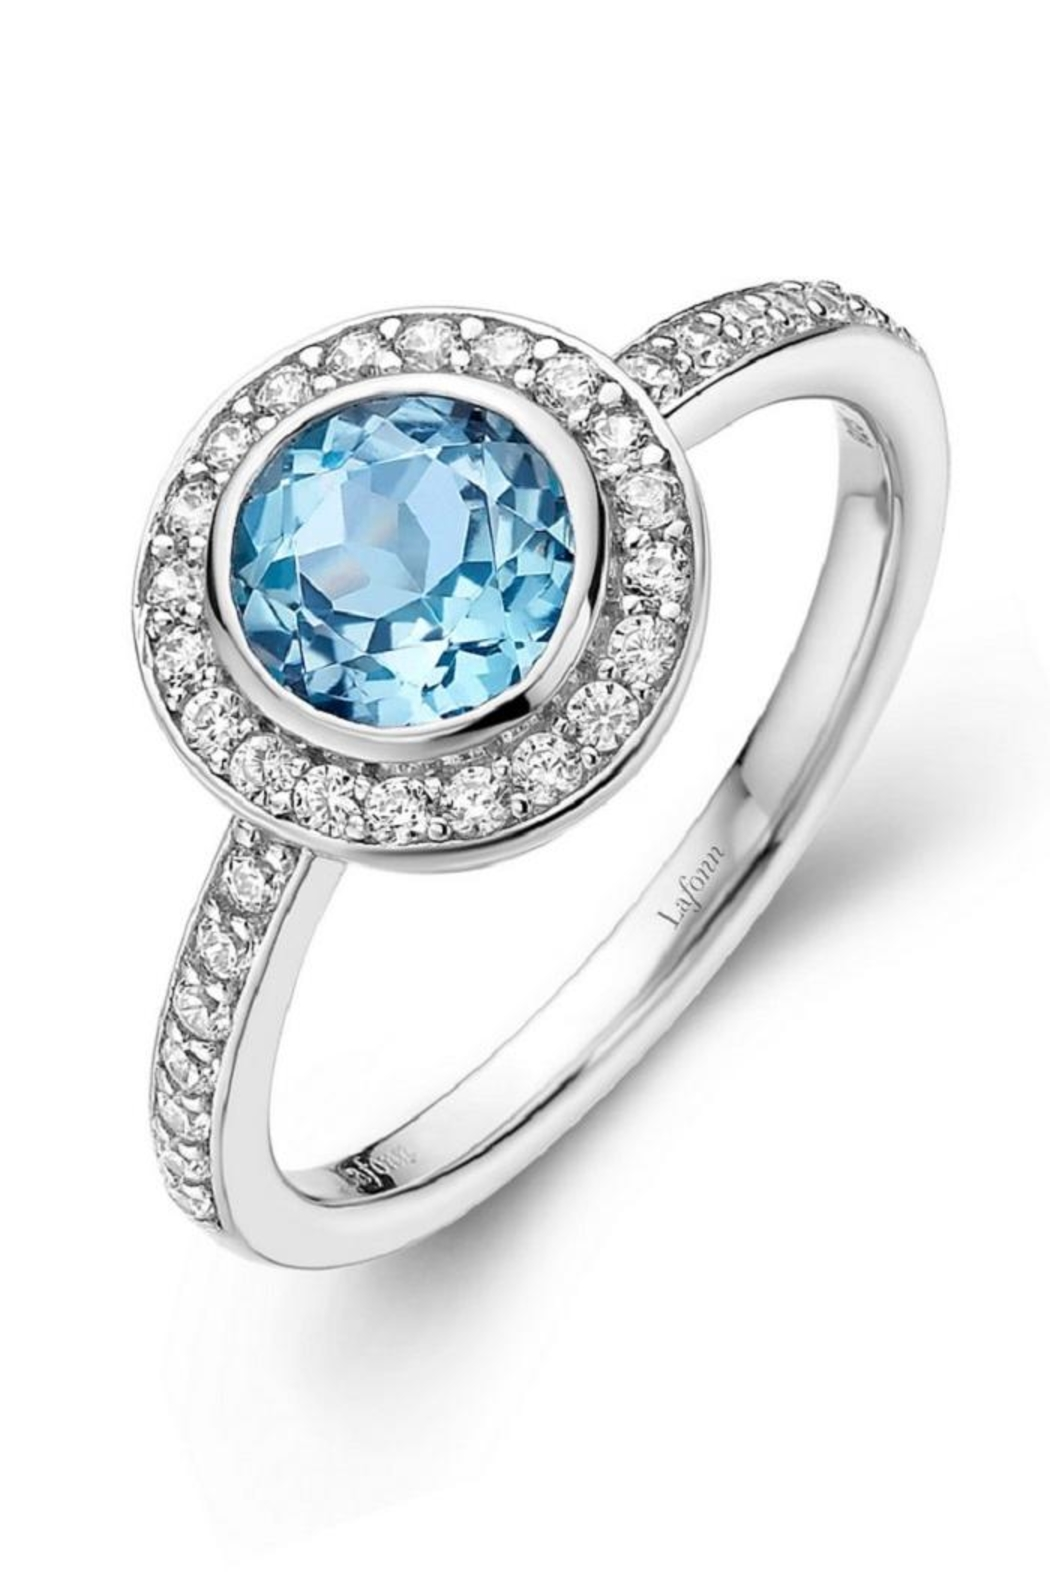 london design jewelry rhodium rings sterling stone in silver amazon sizes blue to ring carats topaz com finish nickel dp